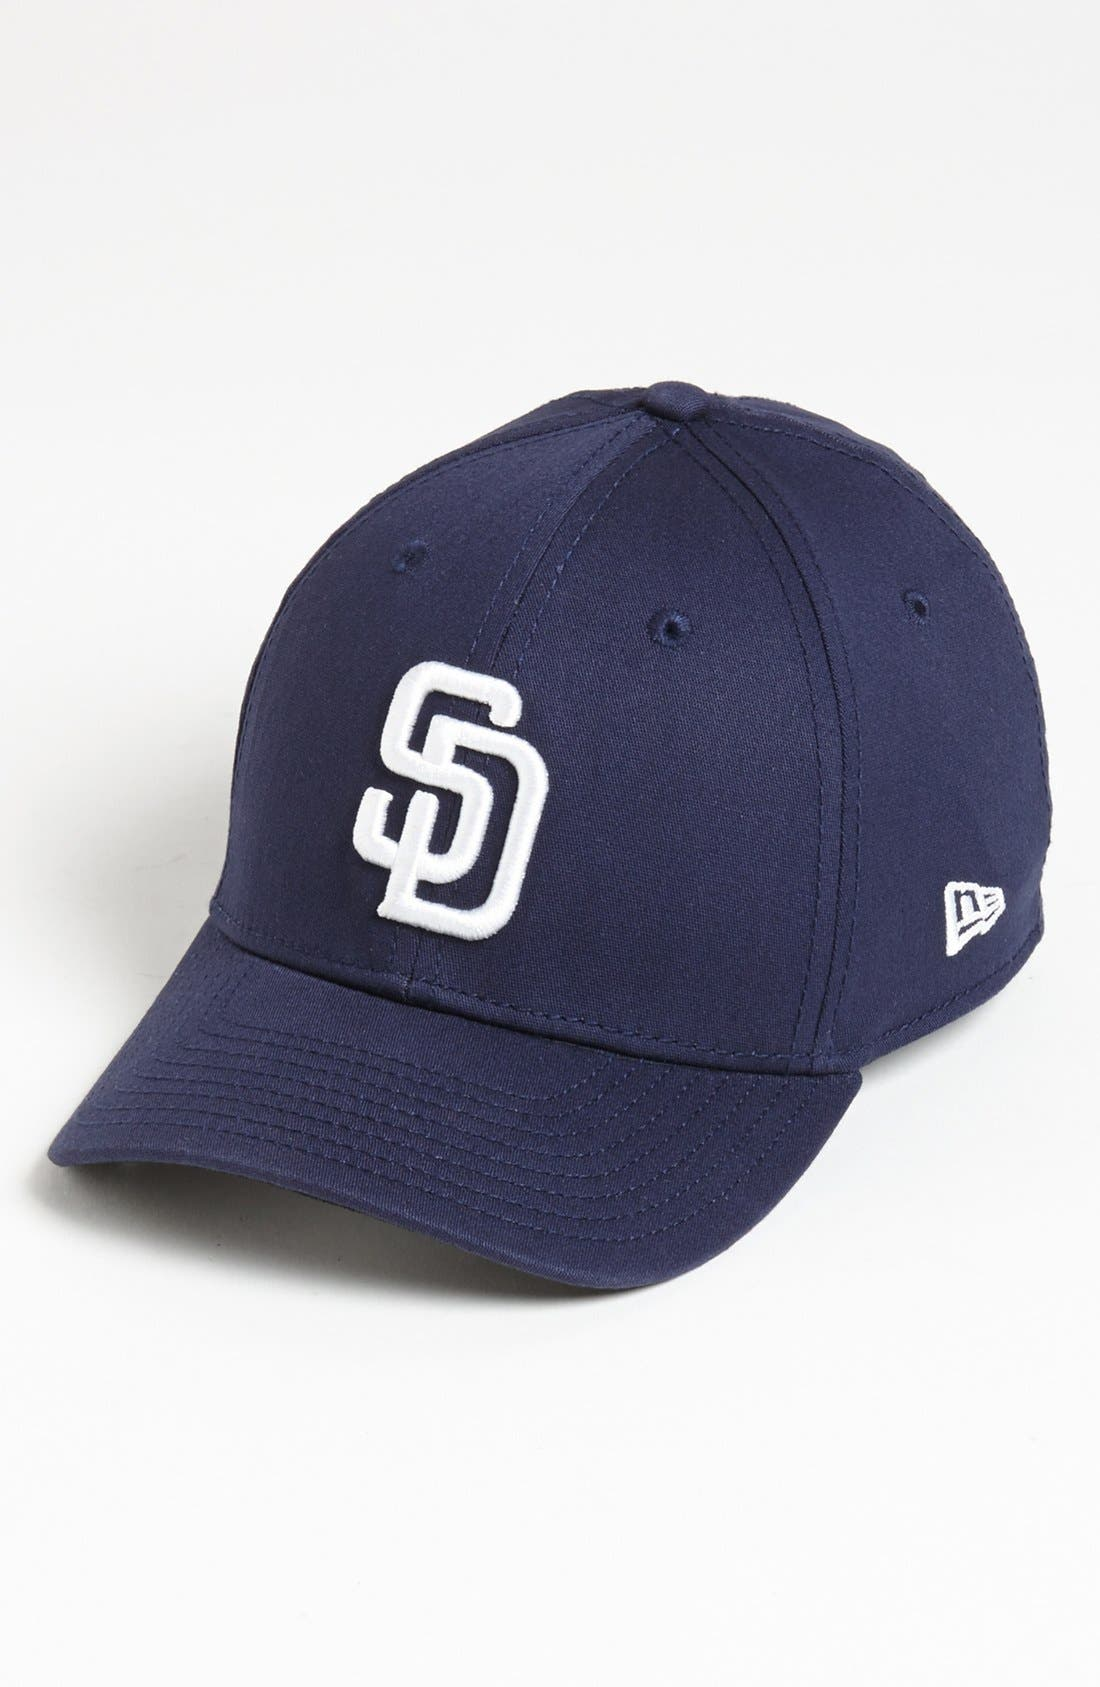 Main Image - New Era Cap 'San Diego Padres - Tie Breaker' Baseball Cap (Big Boys)